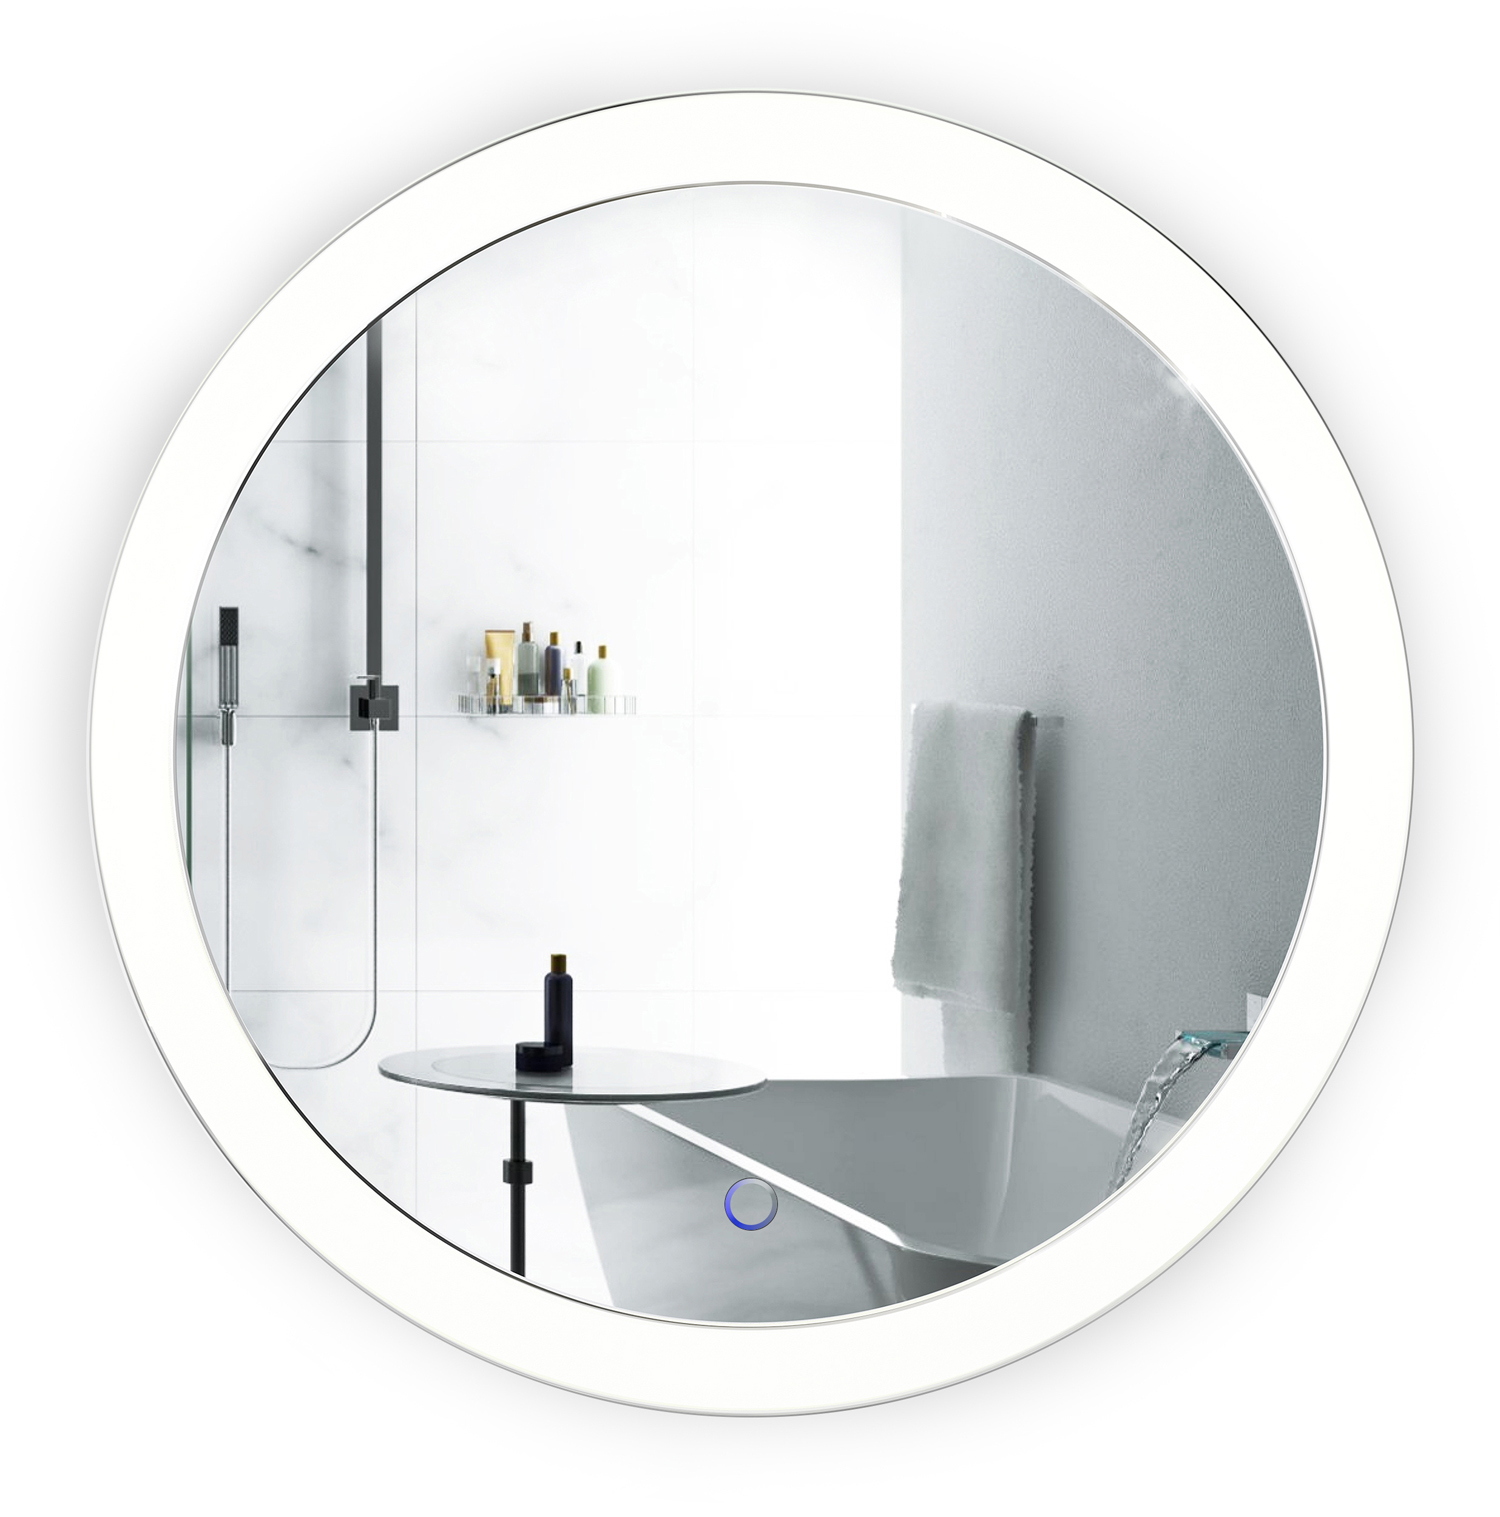 led 22 round bathroom mirror lighted with dimmer. Black Bedroom Furniture Sets. Home Design Ideas